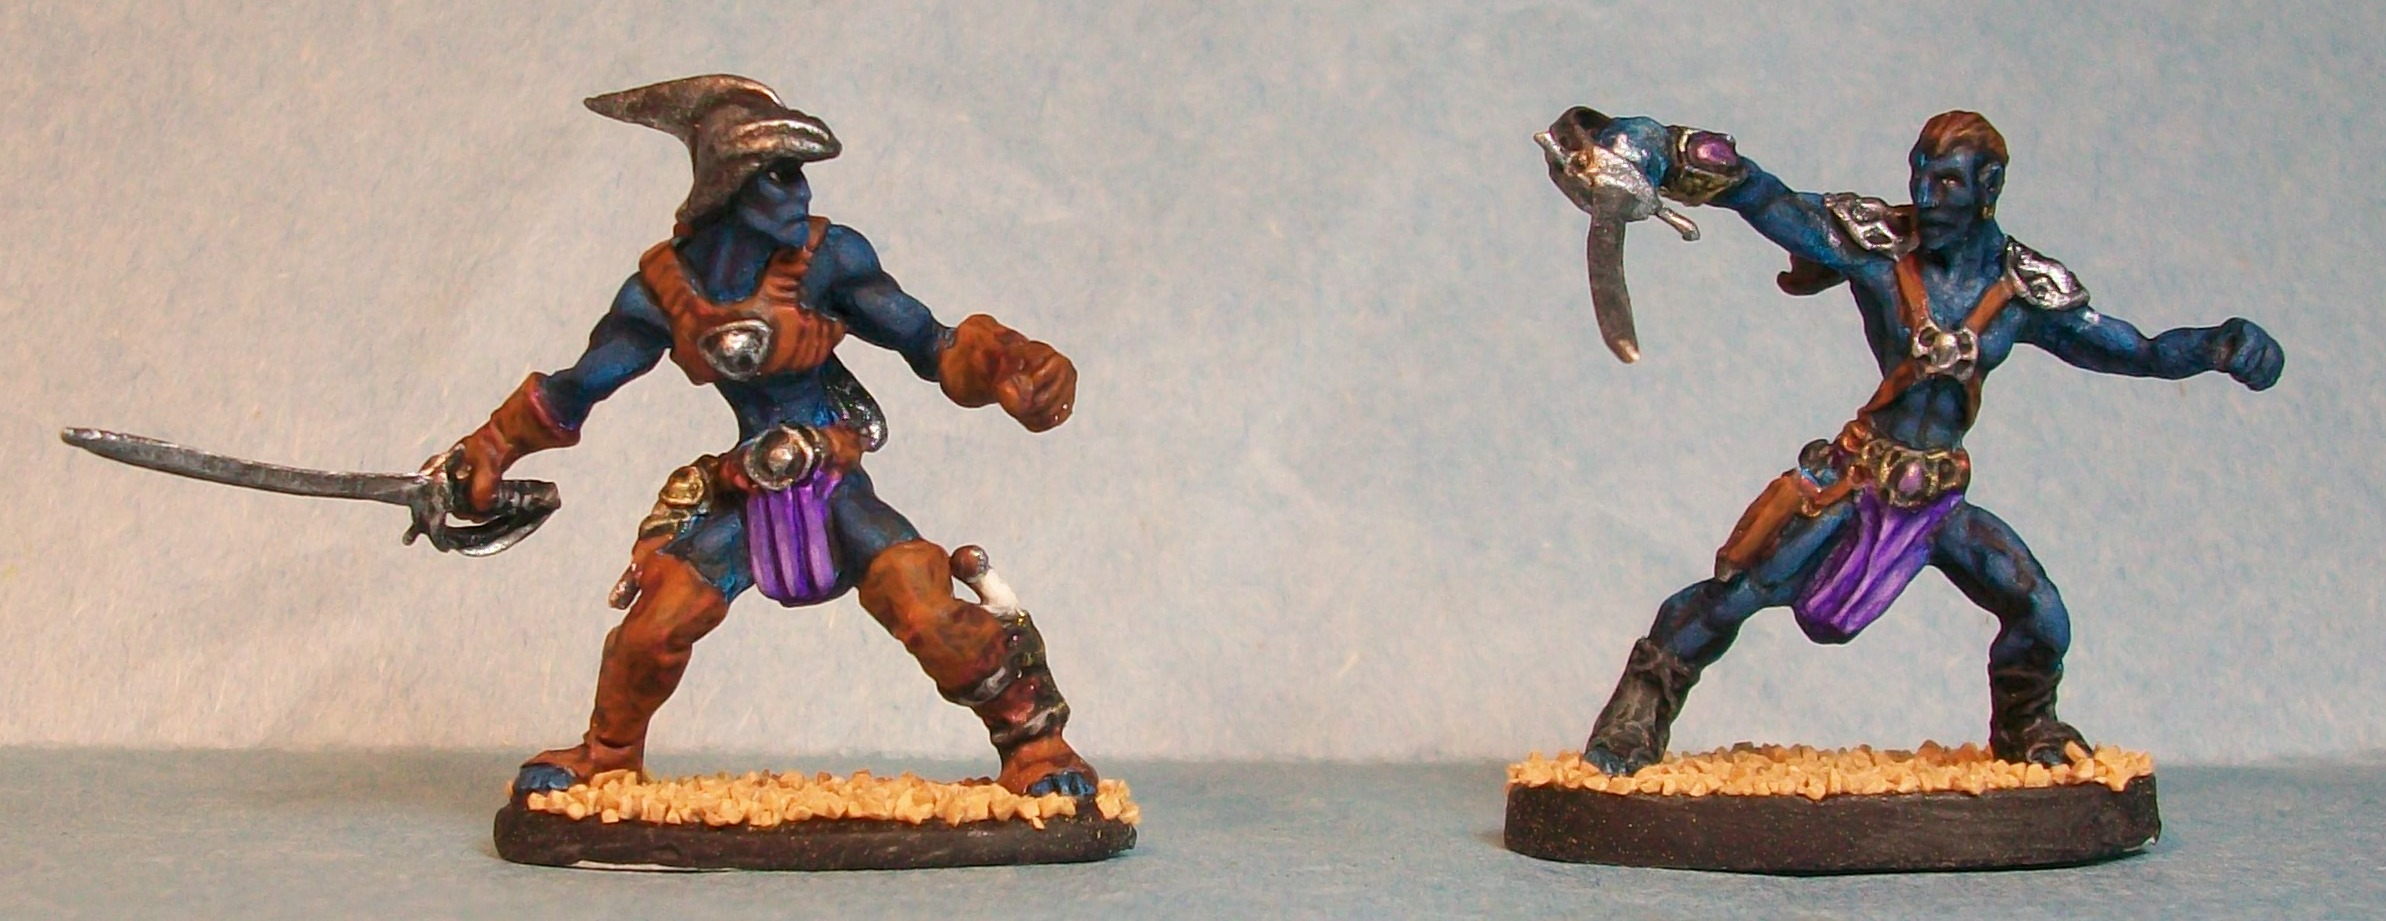 Male Black Pirate Warriors